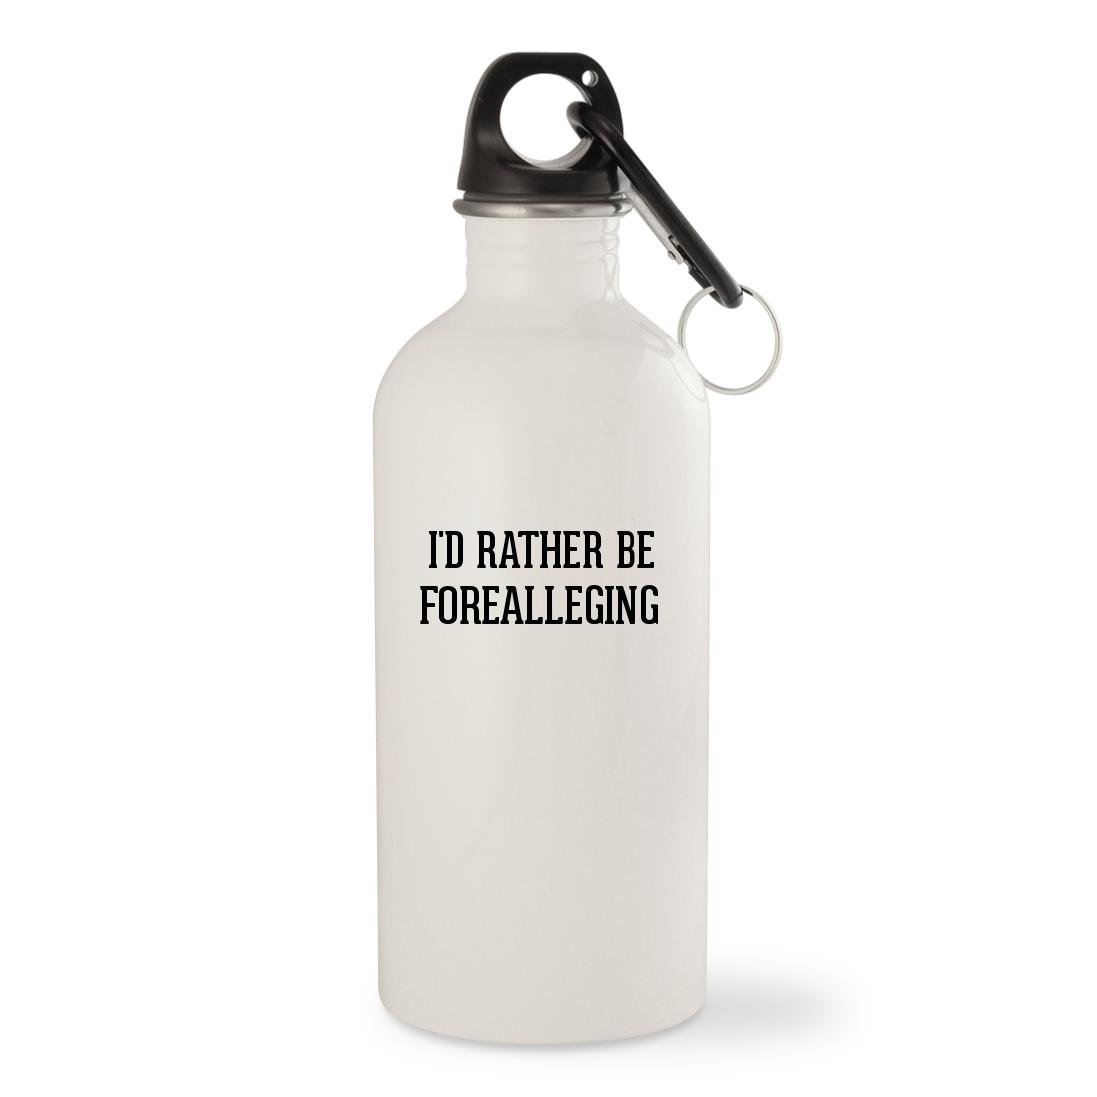 I'd Rather Be FOREALLEGING - White 20oz Stainless Steel Water Bottle with Carabiner